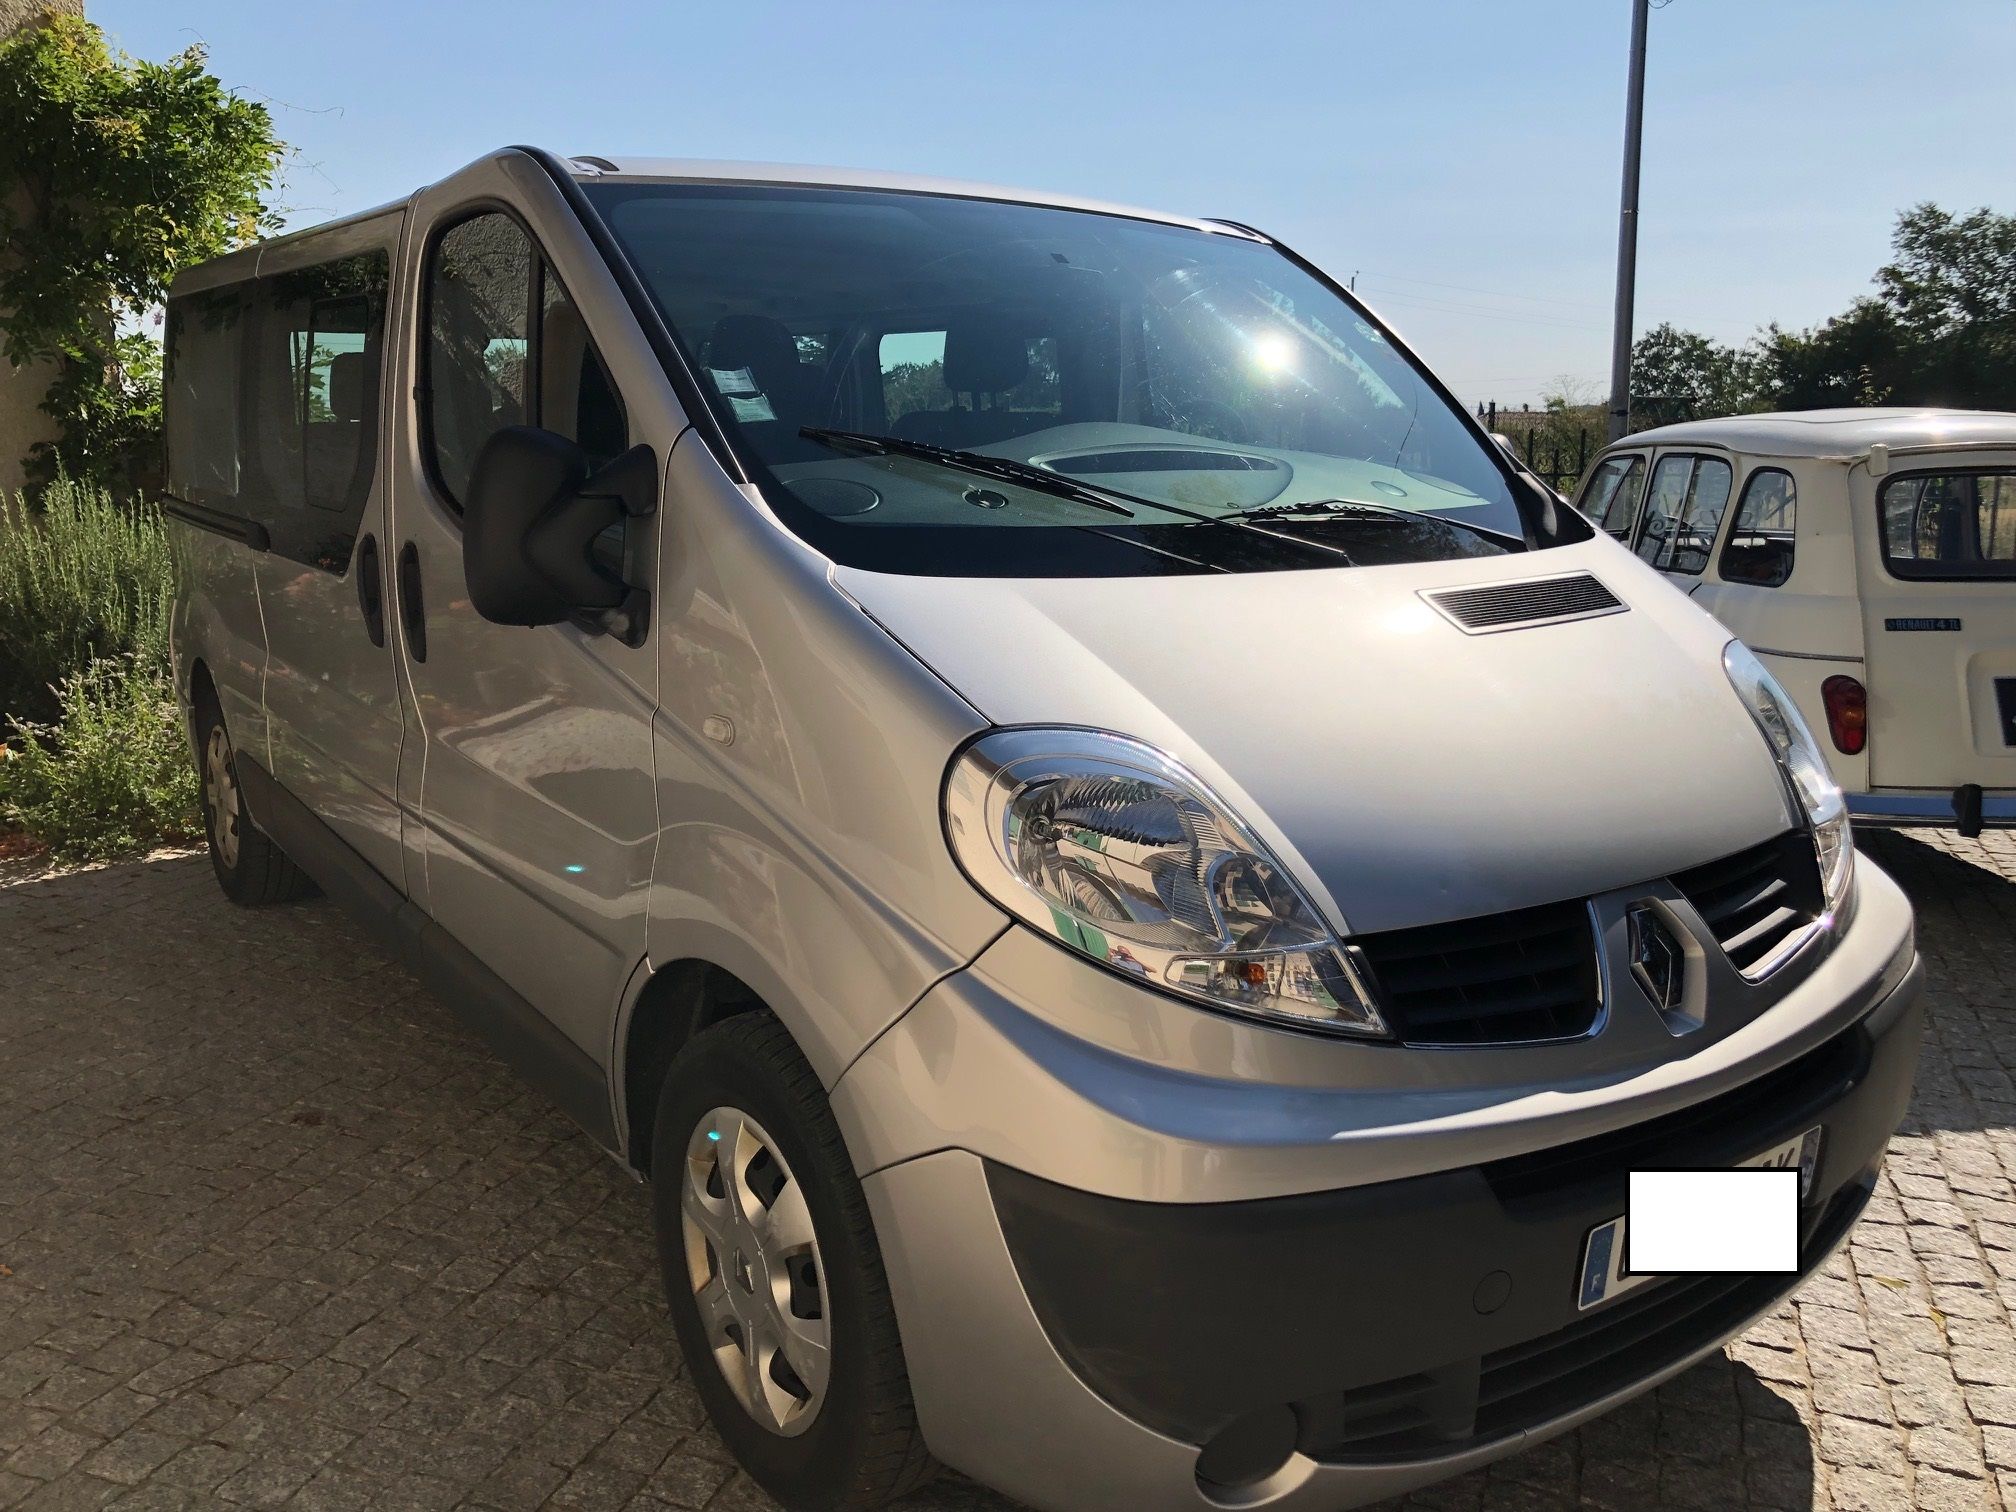 Renault Trafic Mini-Bus